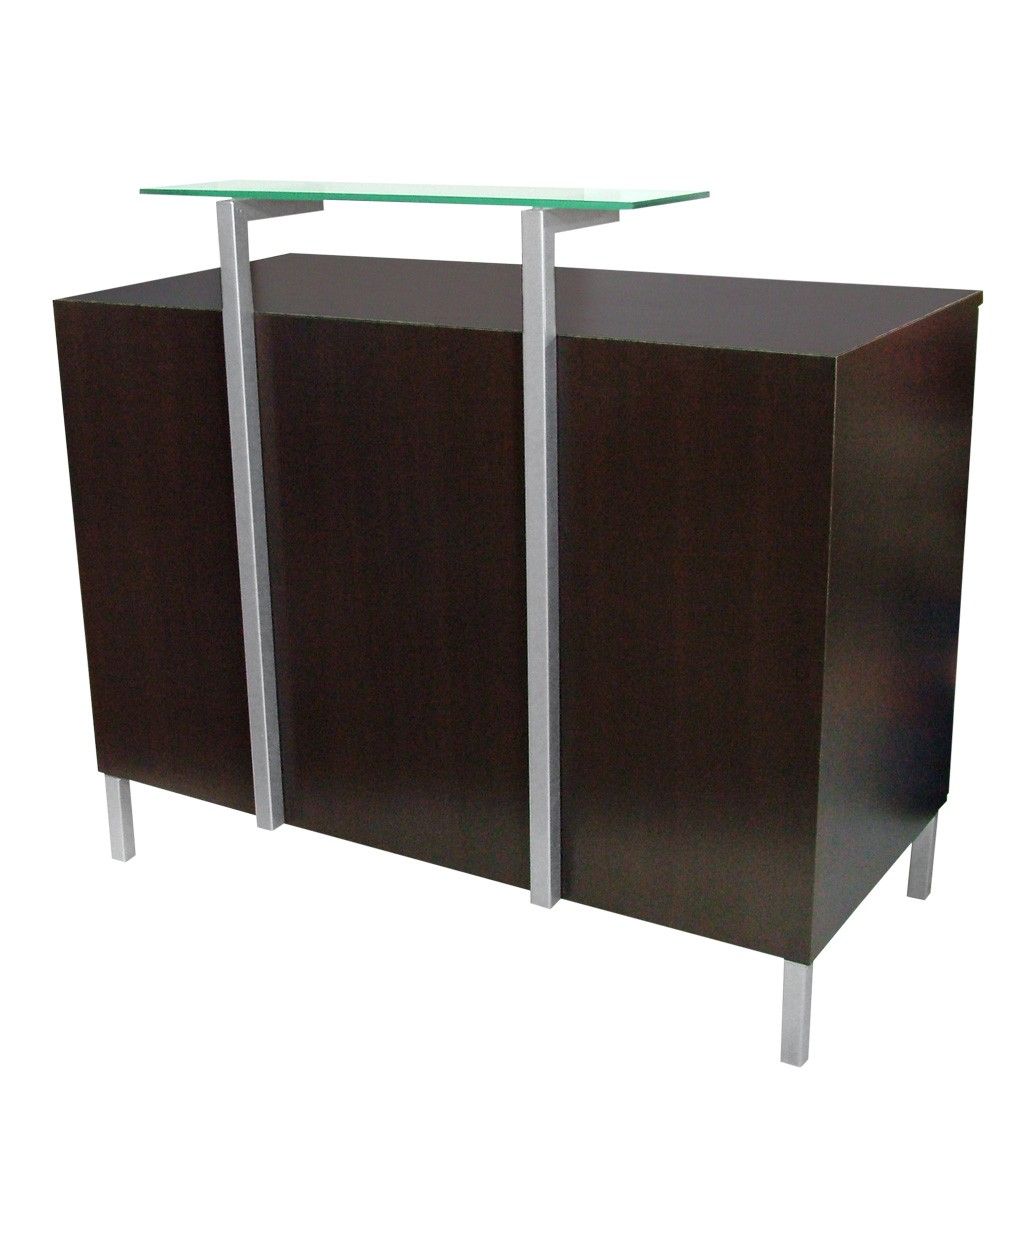 951-48 Enova Due Reception Desk